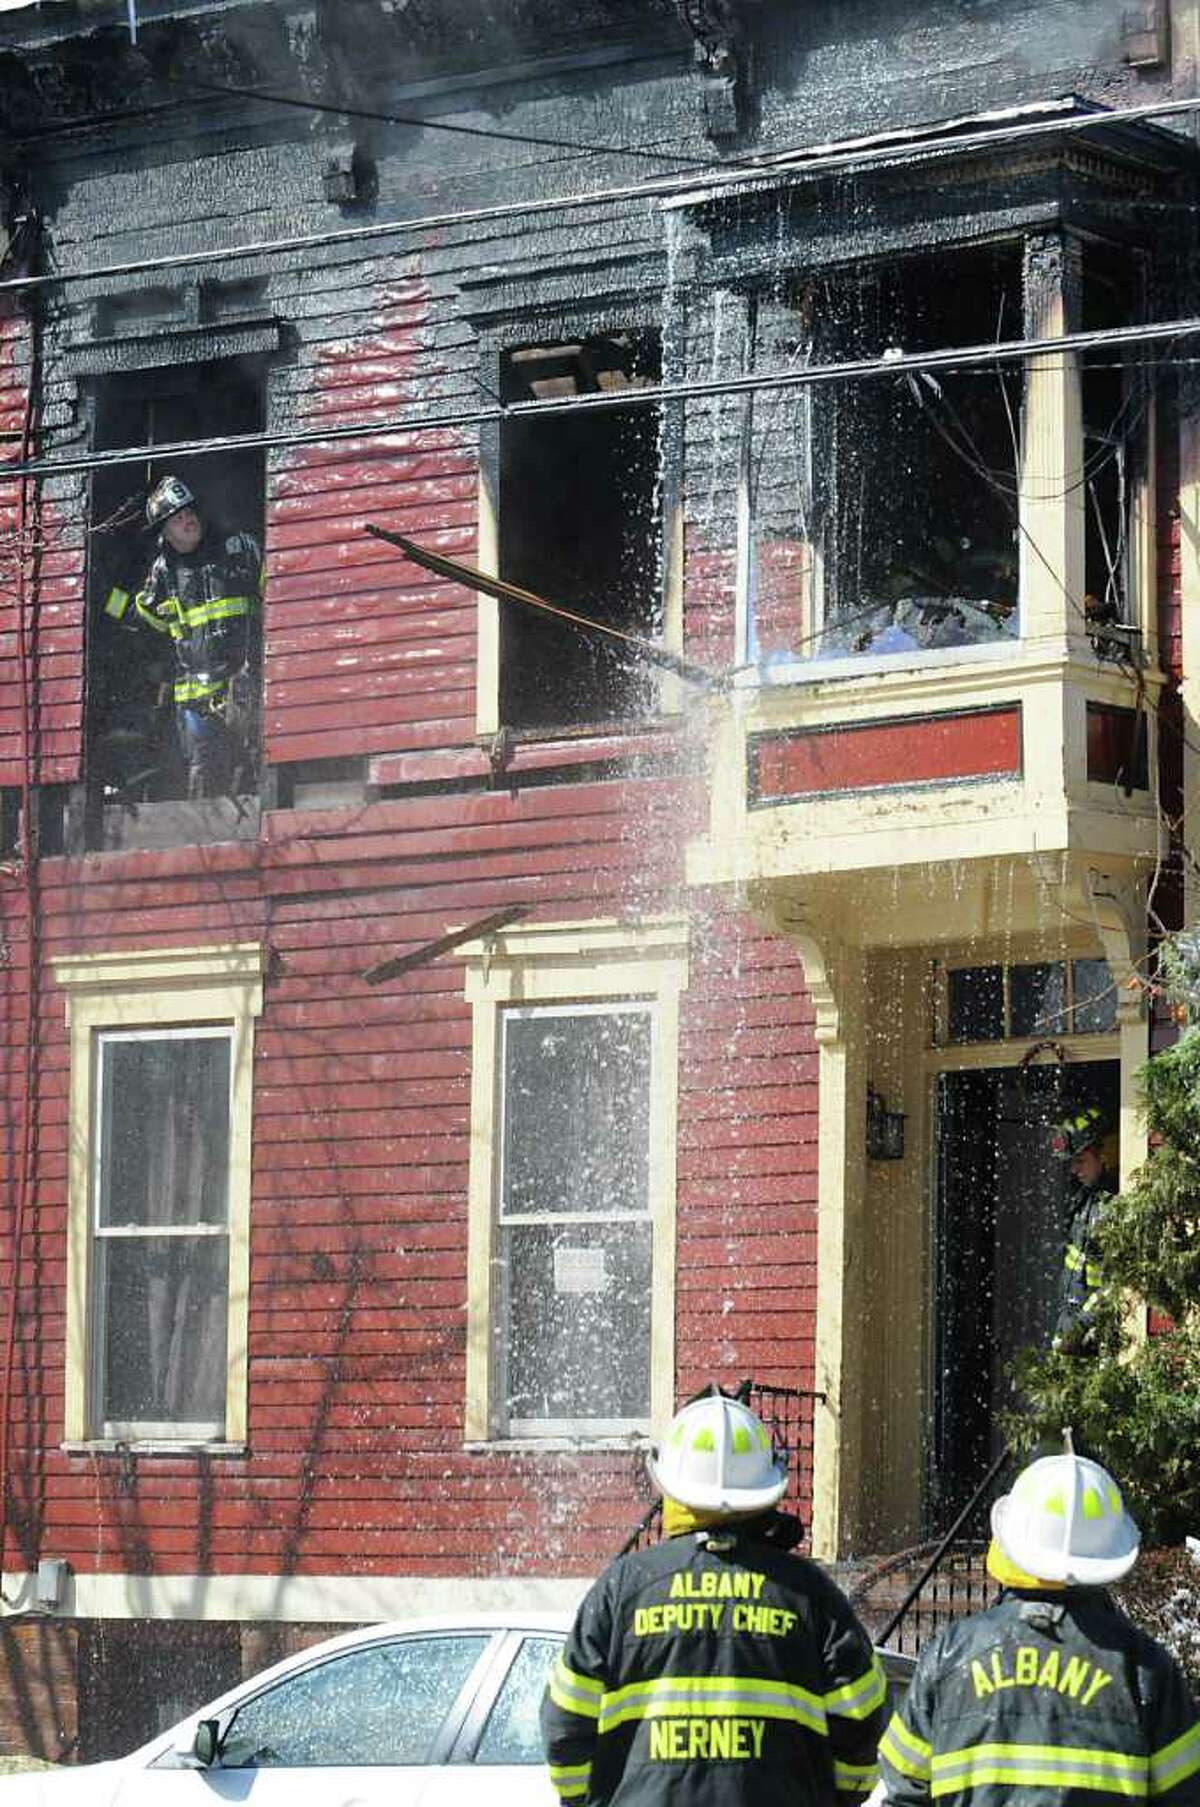 of 139 Dove St. in Albany, NY on Tuesday, March 8, 2011. (Lori Van Buren / Times Union)